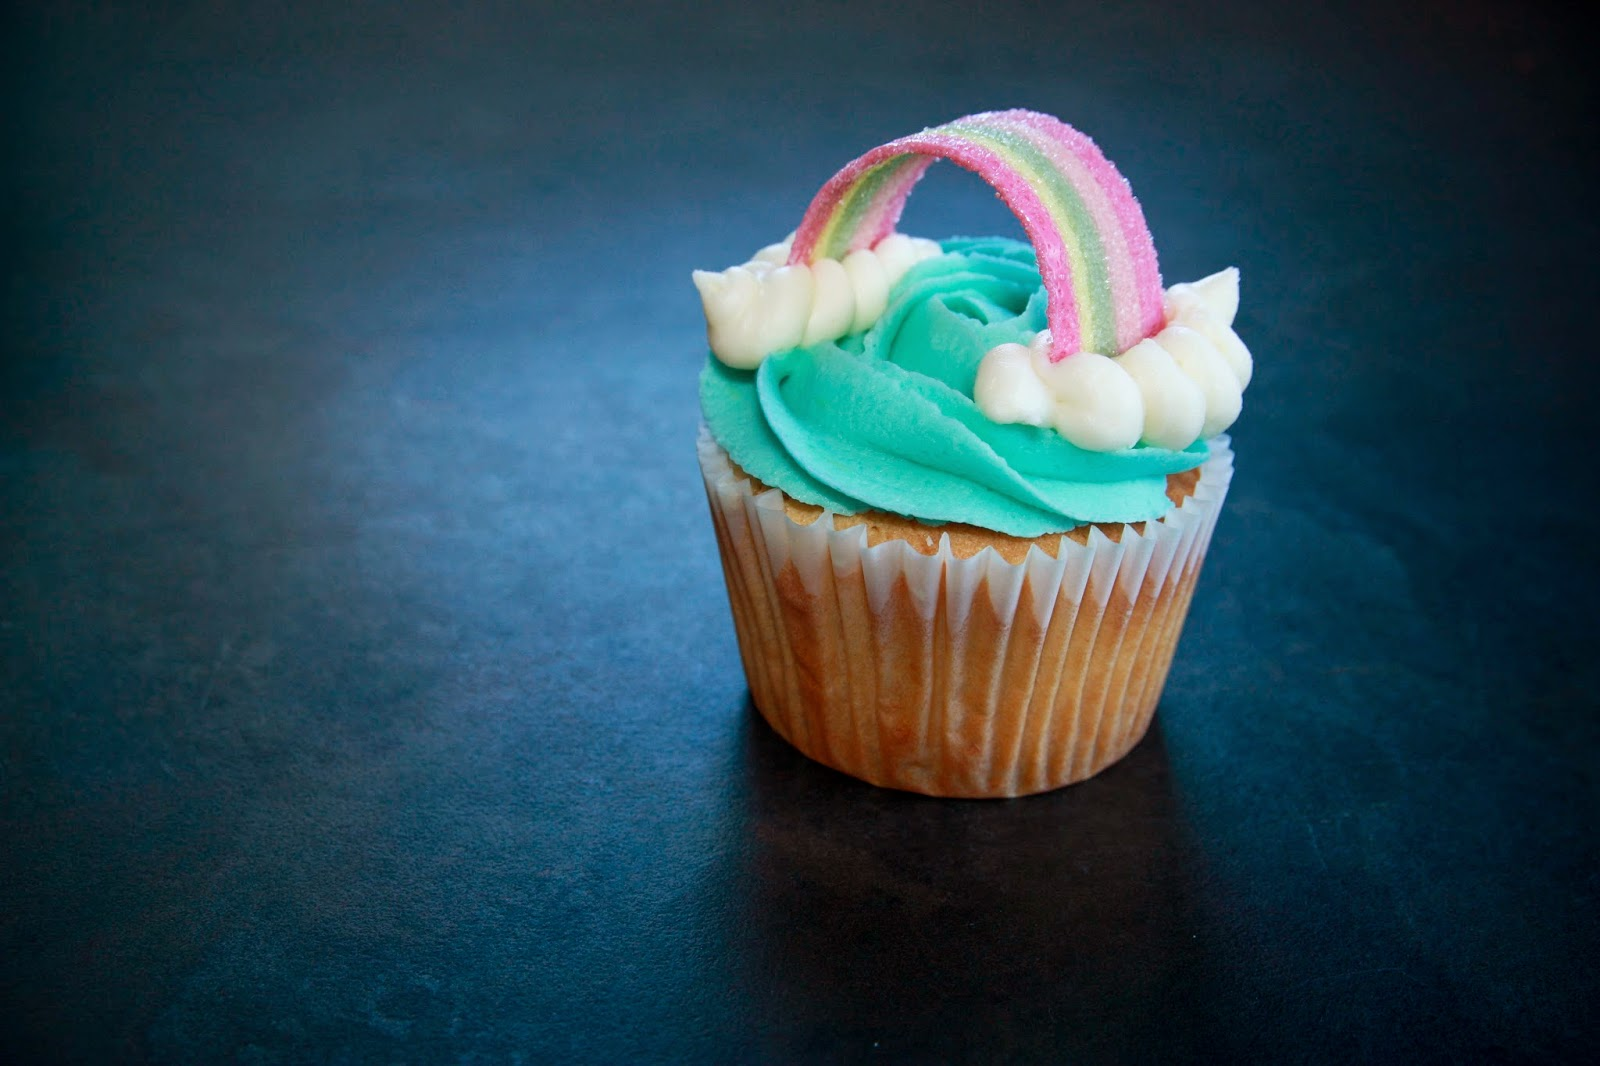 Lemon and passion fruit cupcakes topped with a piped blue butter cream rose swirl, piped clouds and a rainbow belt sweet